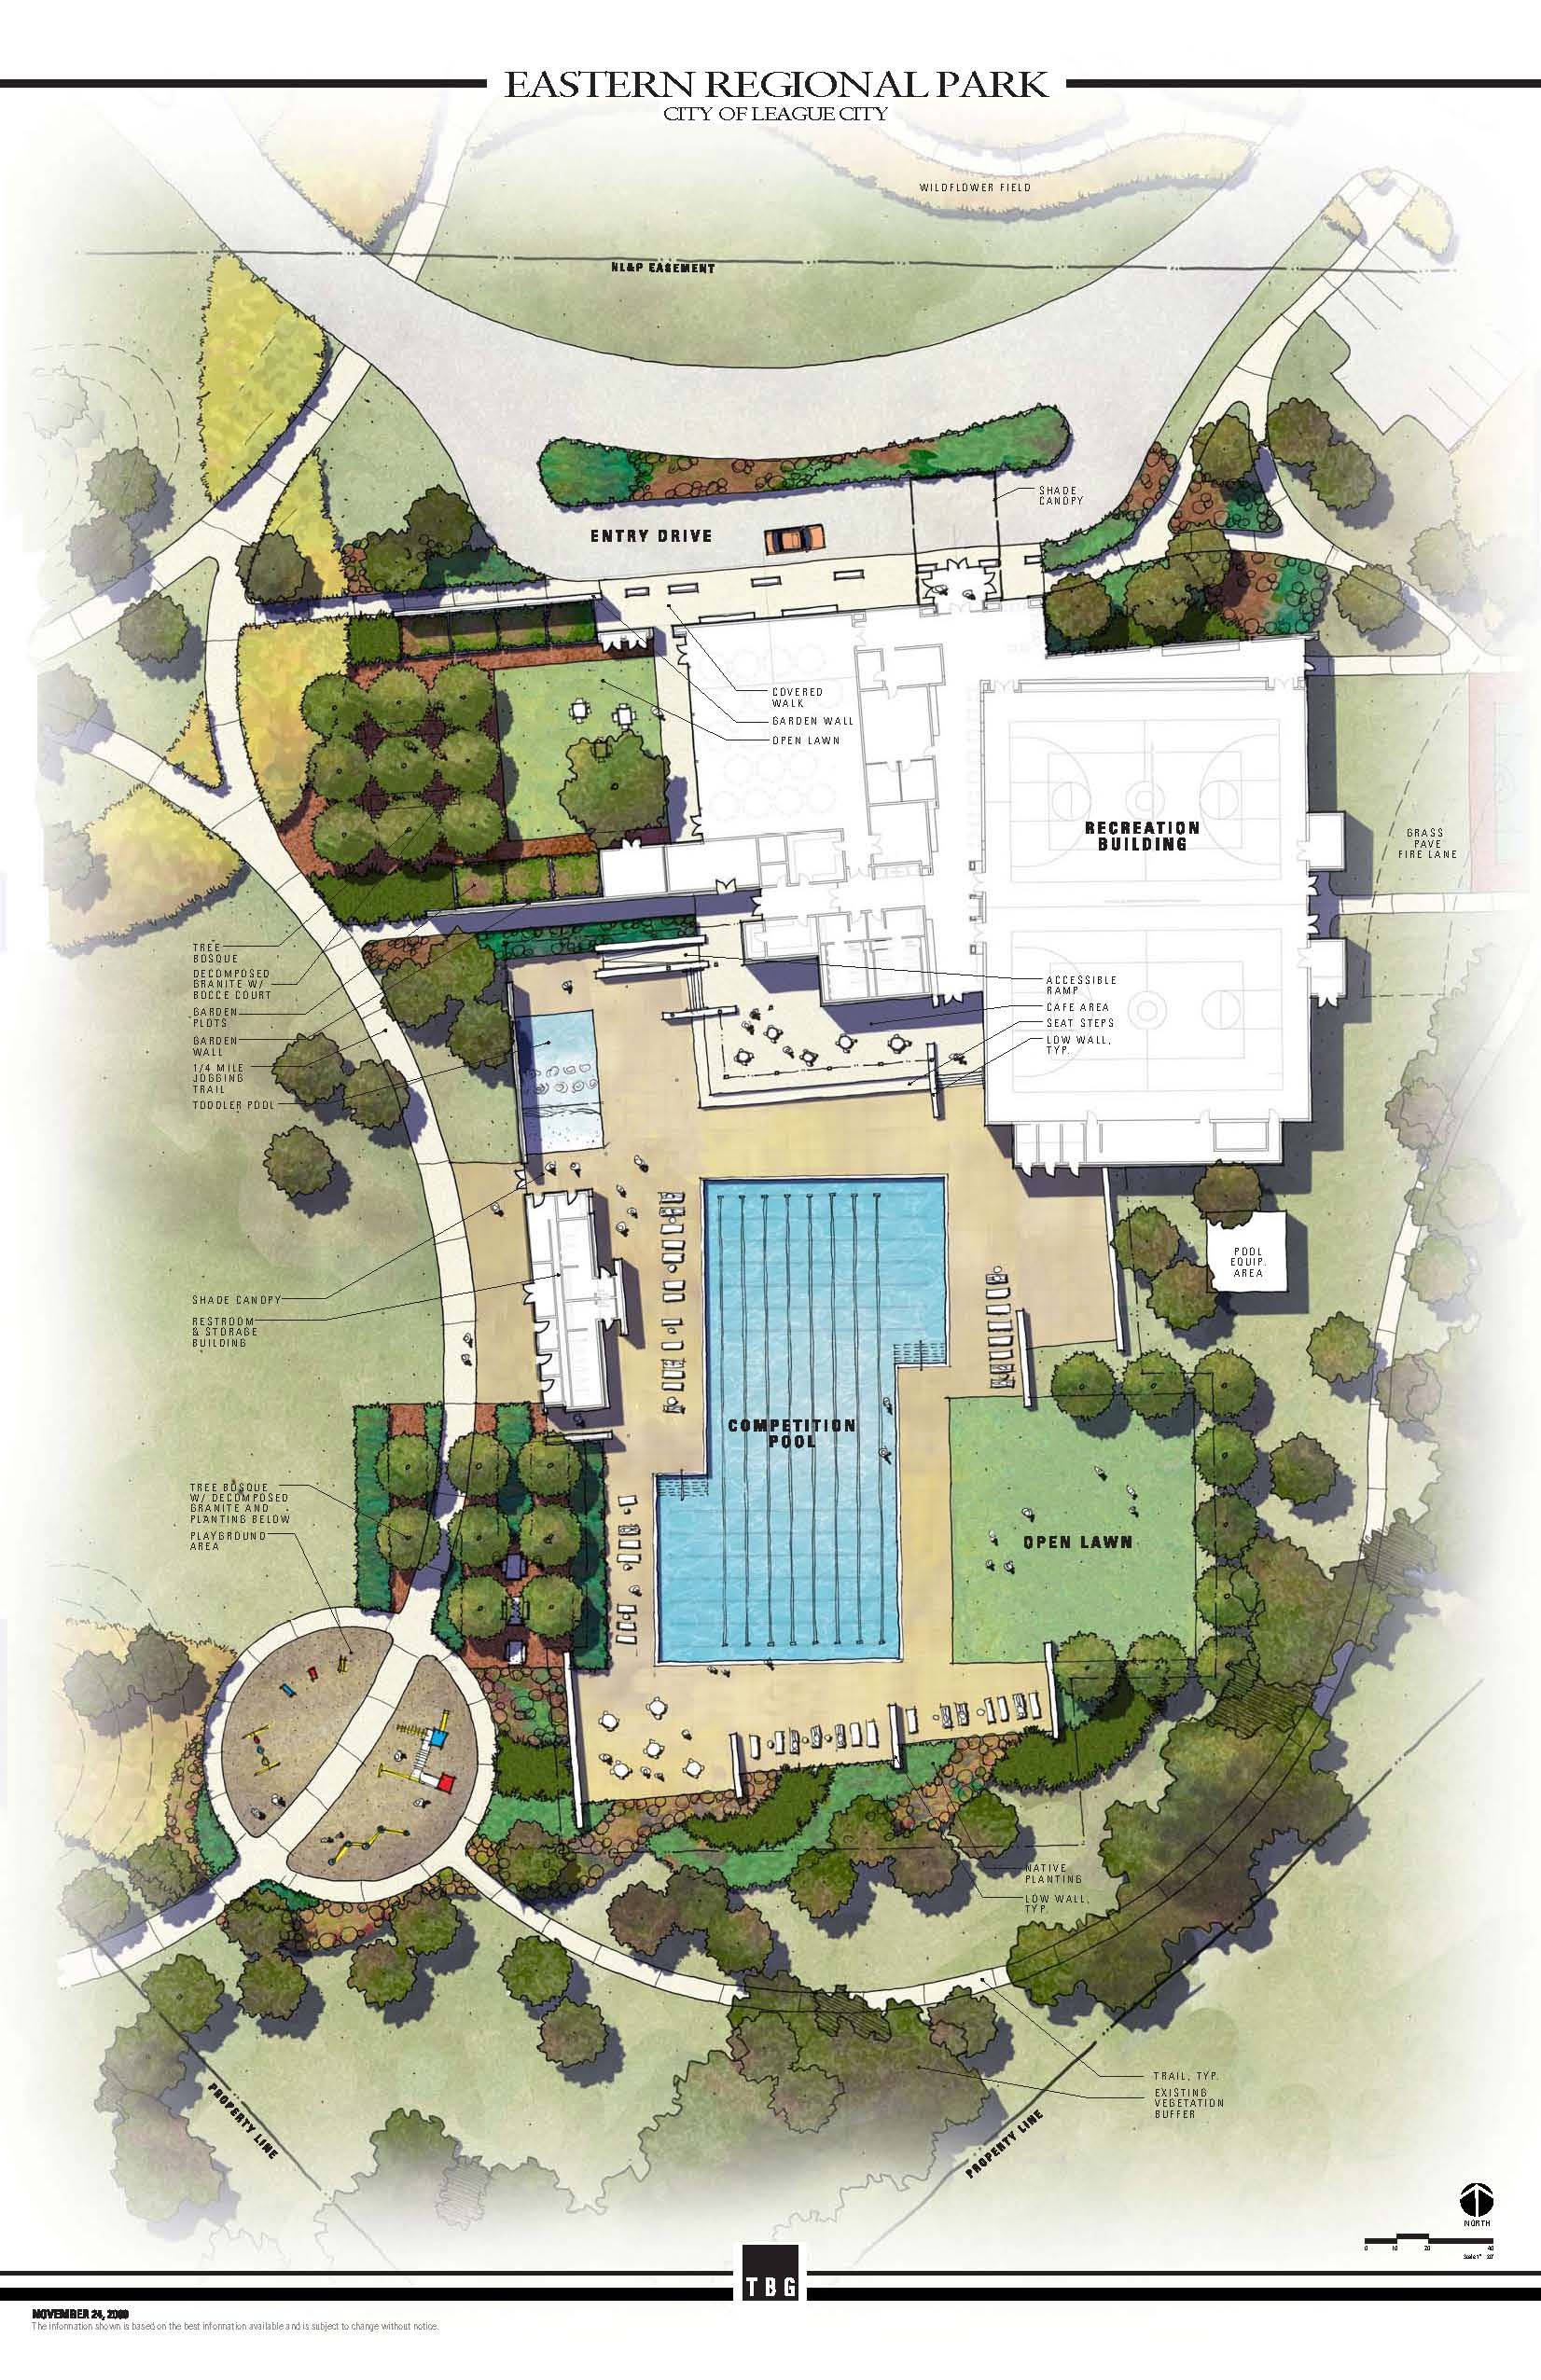 The League City Official Website Building Pool Plan View